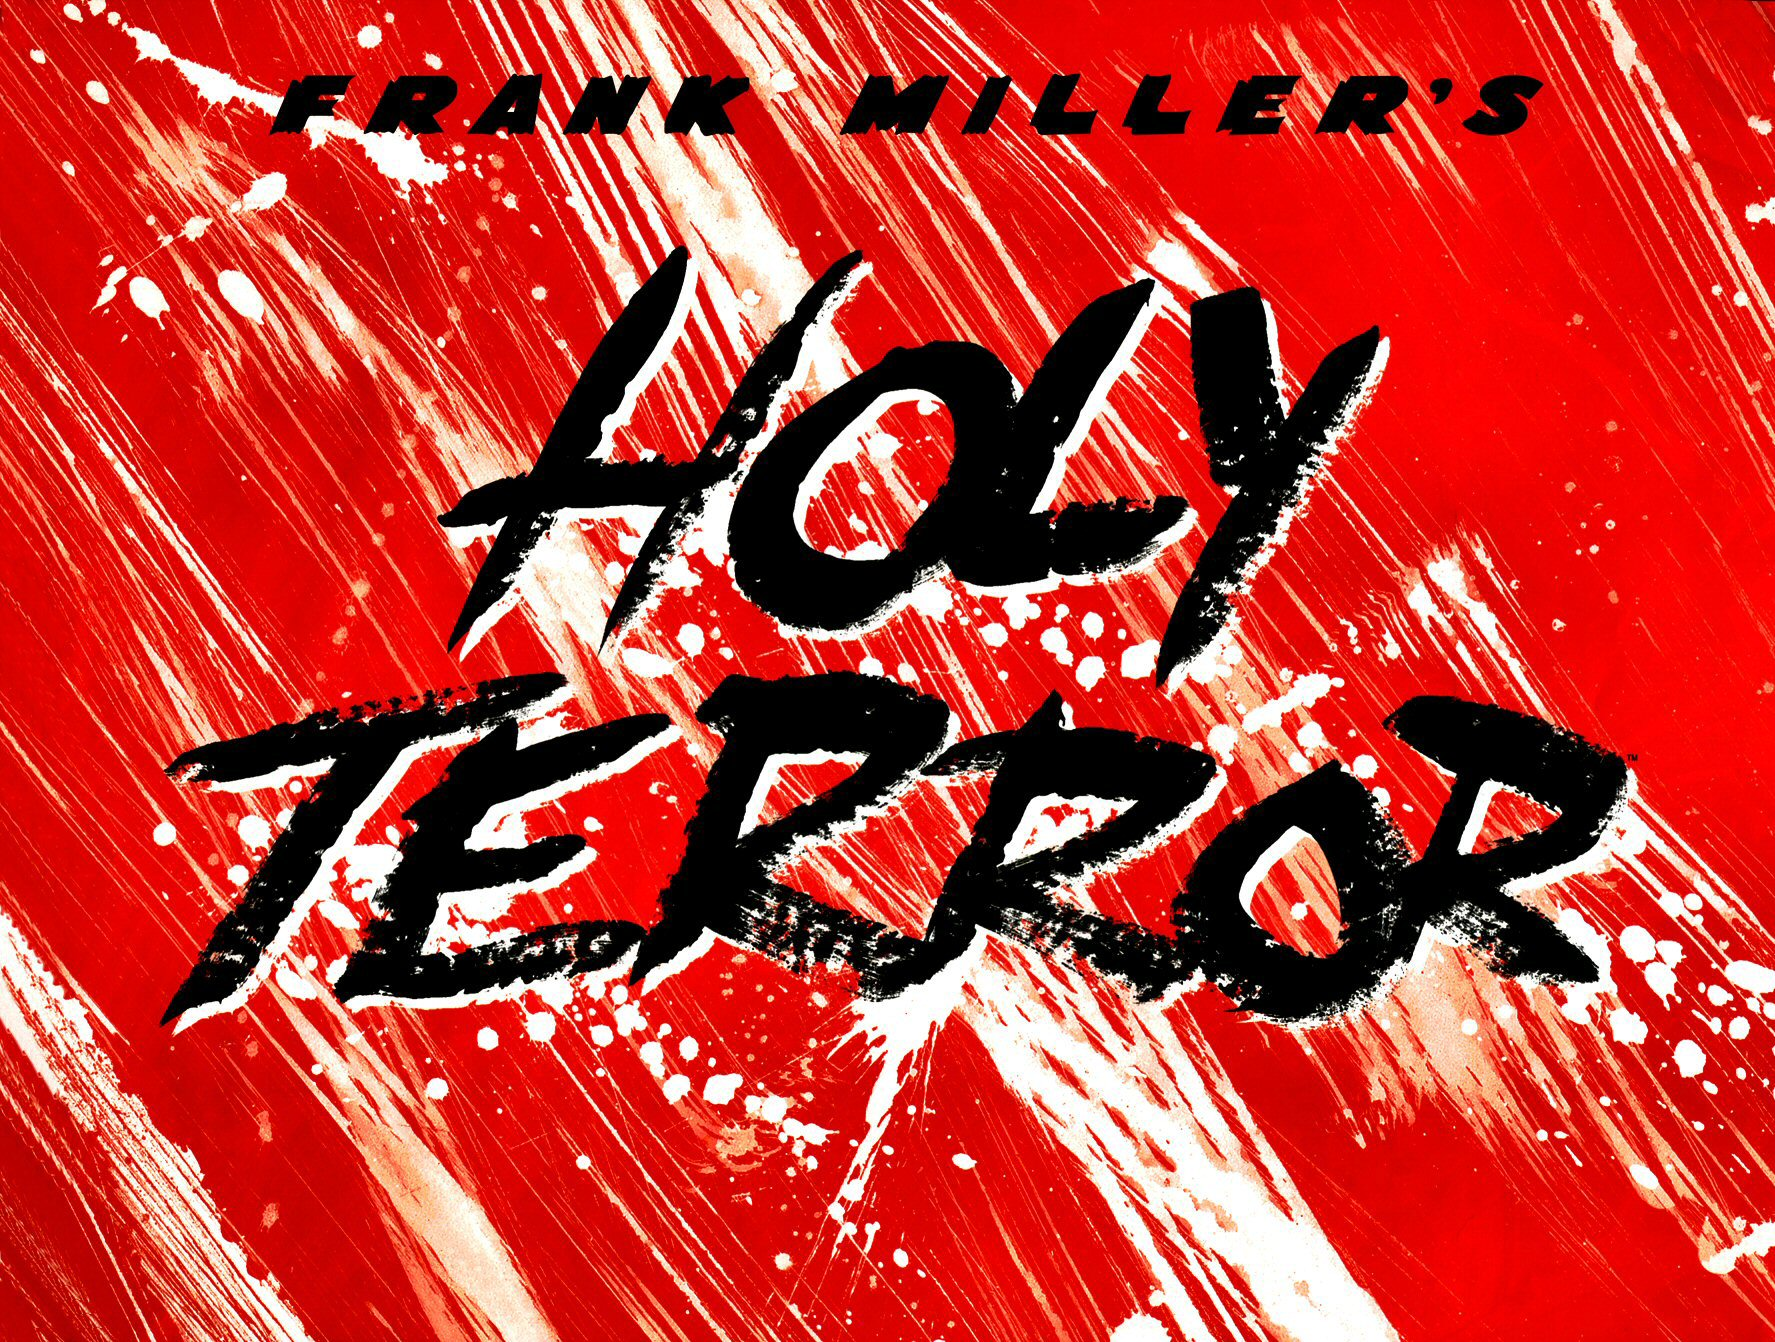 Read online Frank Miller's Holy Terror comic -  Issue # TPB - 5